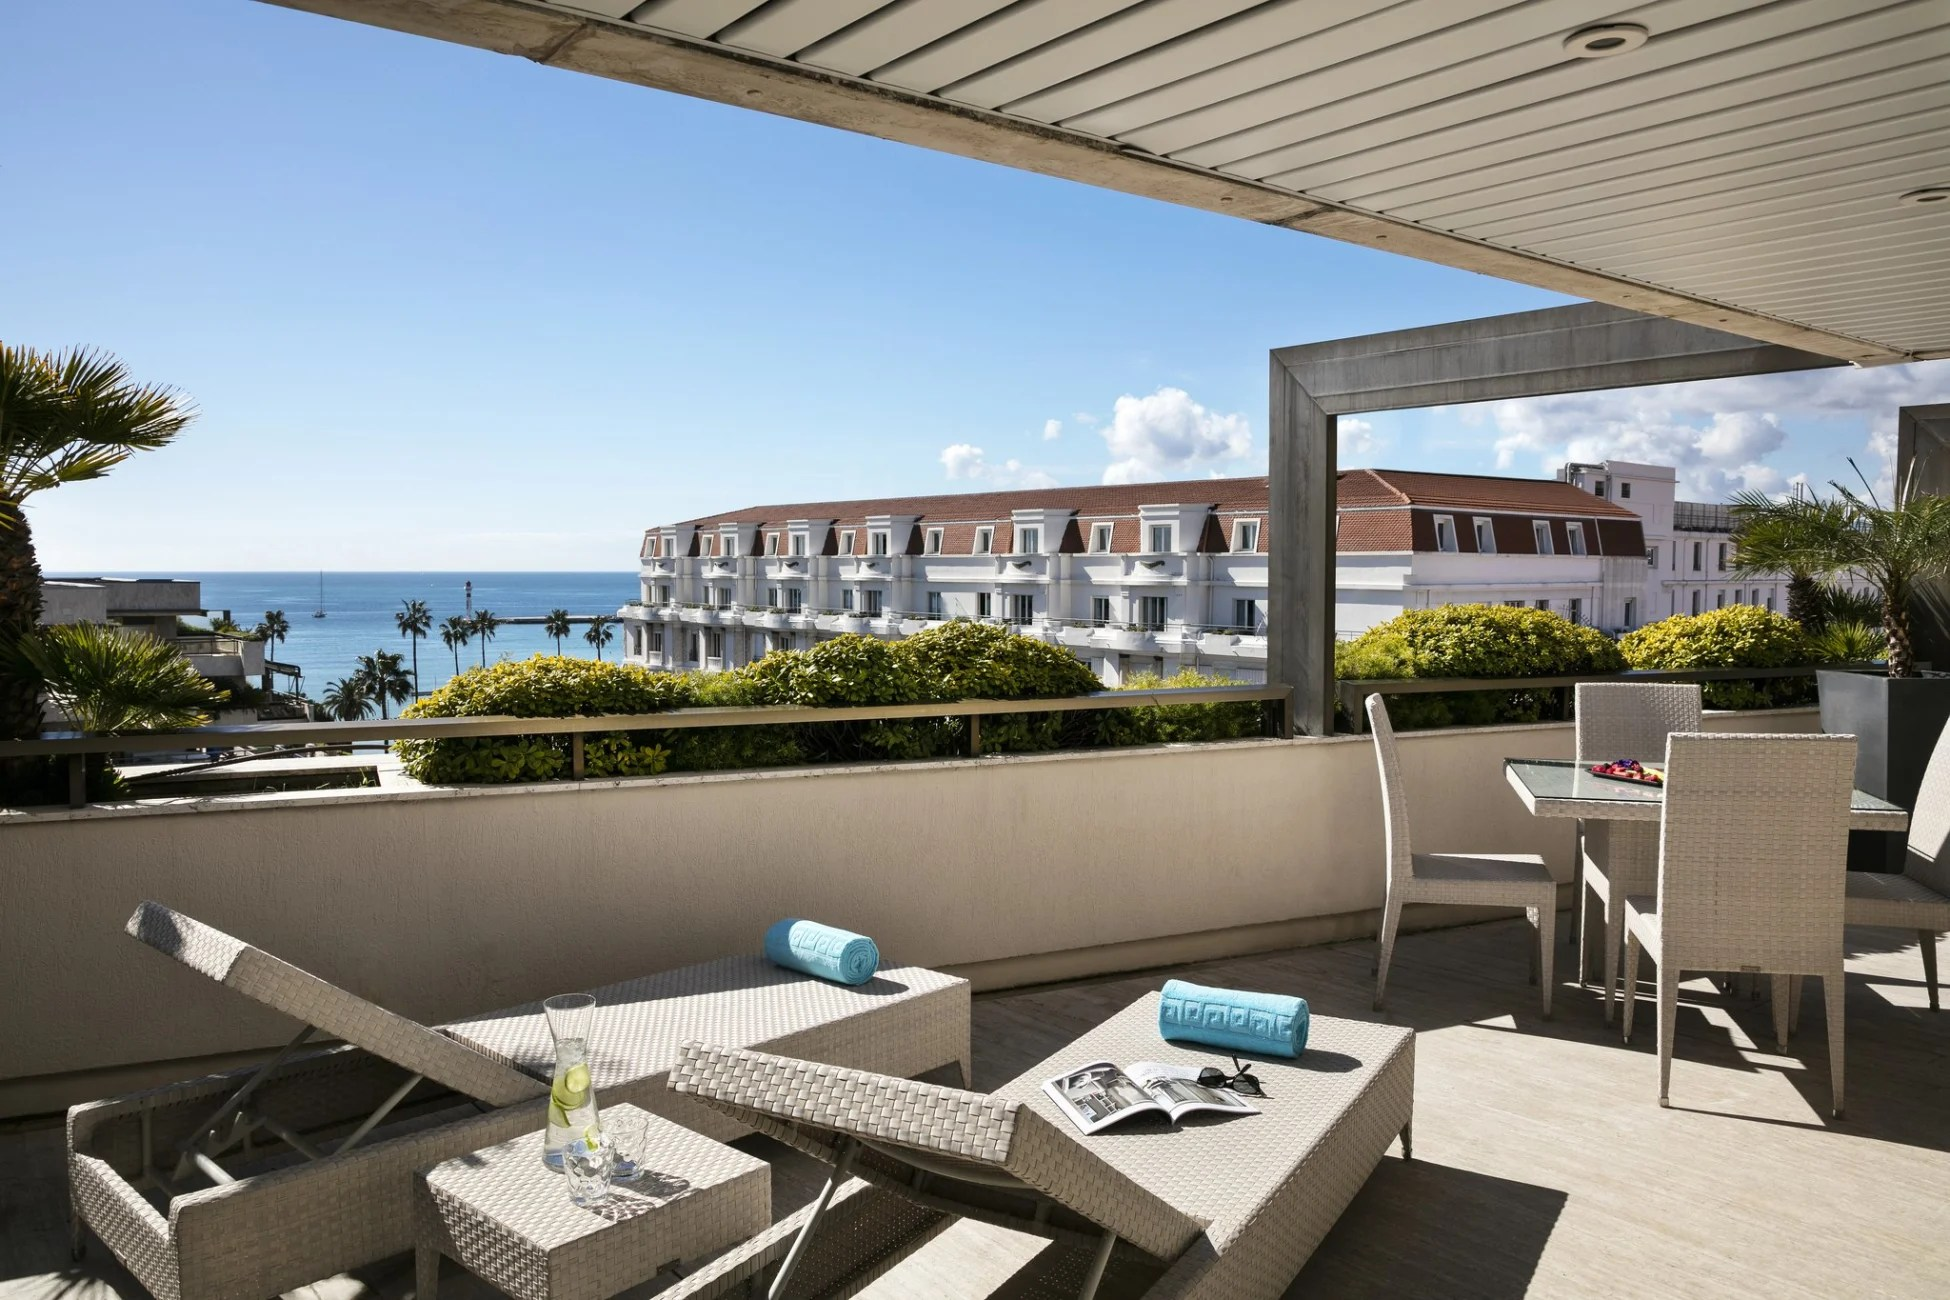 Hotel Hotel Barriere Le Gray D Albion Cannes Trivago Co Uk